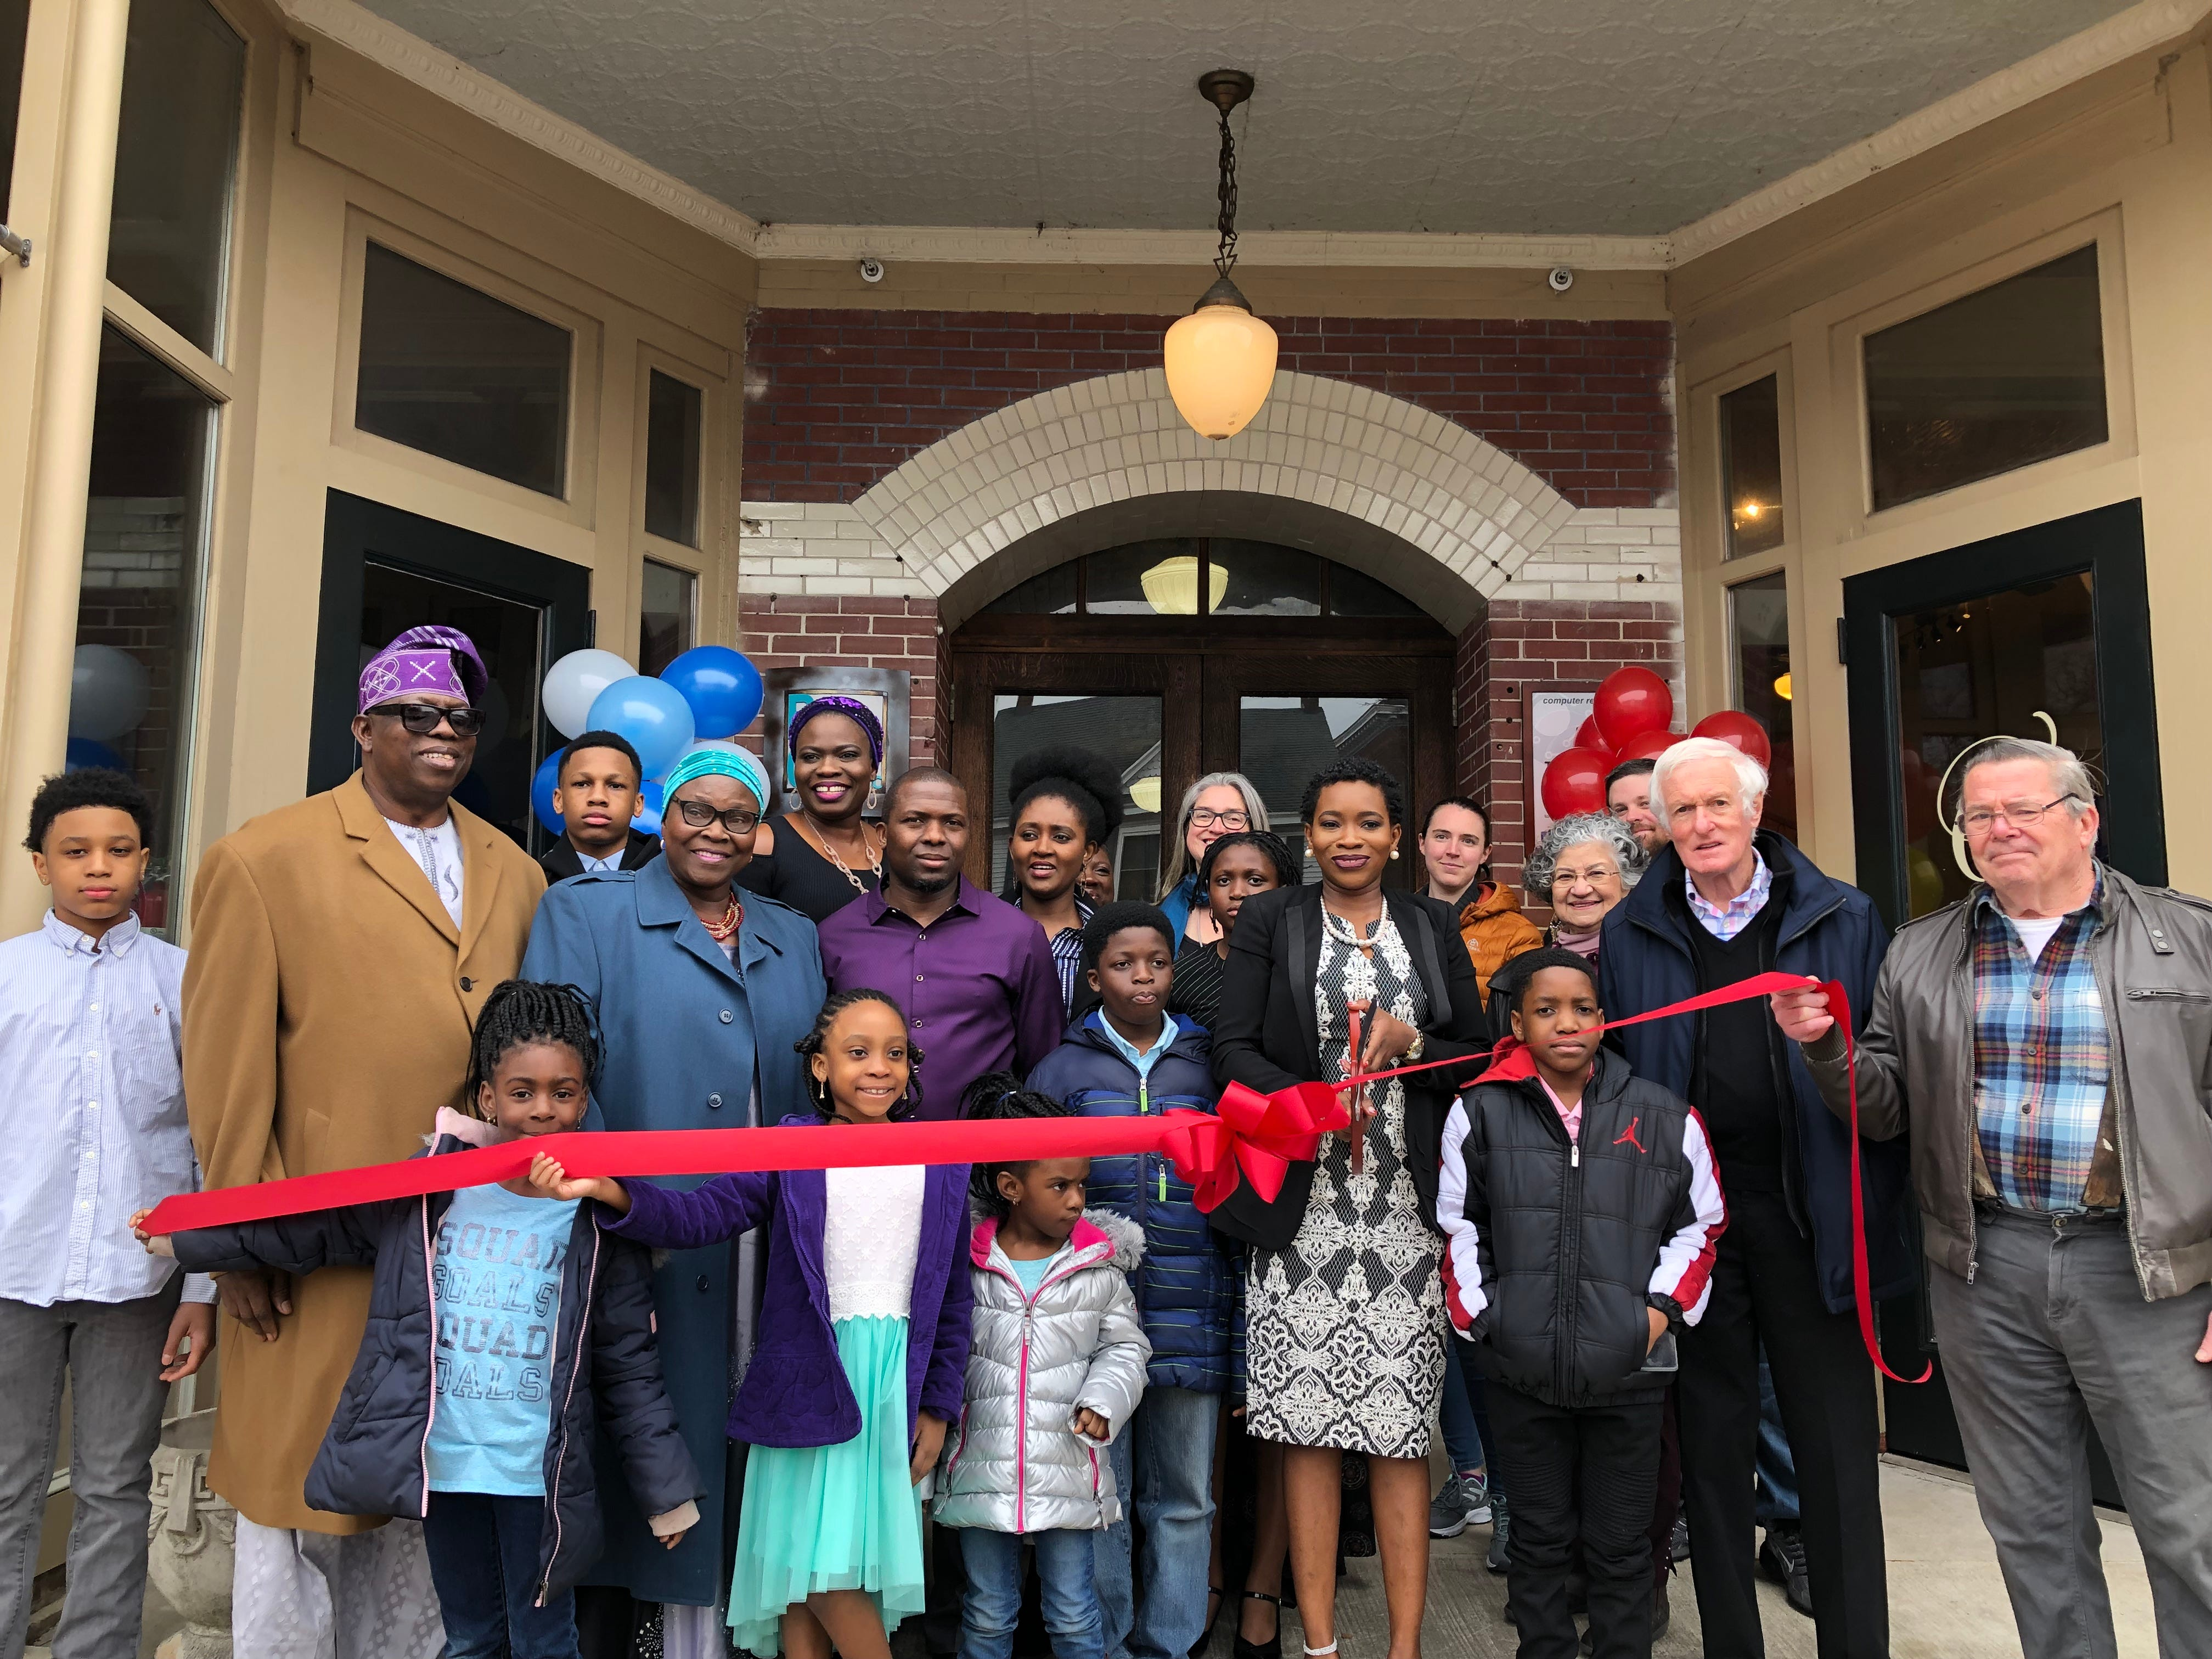 Ganiyat Badmus celebrates the grand opening of her new Princess Anne business, Bluntly Coached, on Saturday, Feb. 23, 2019.